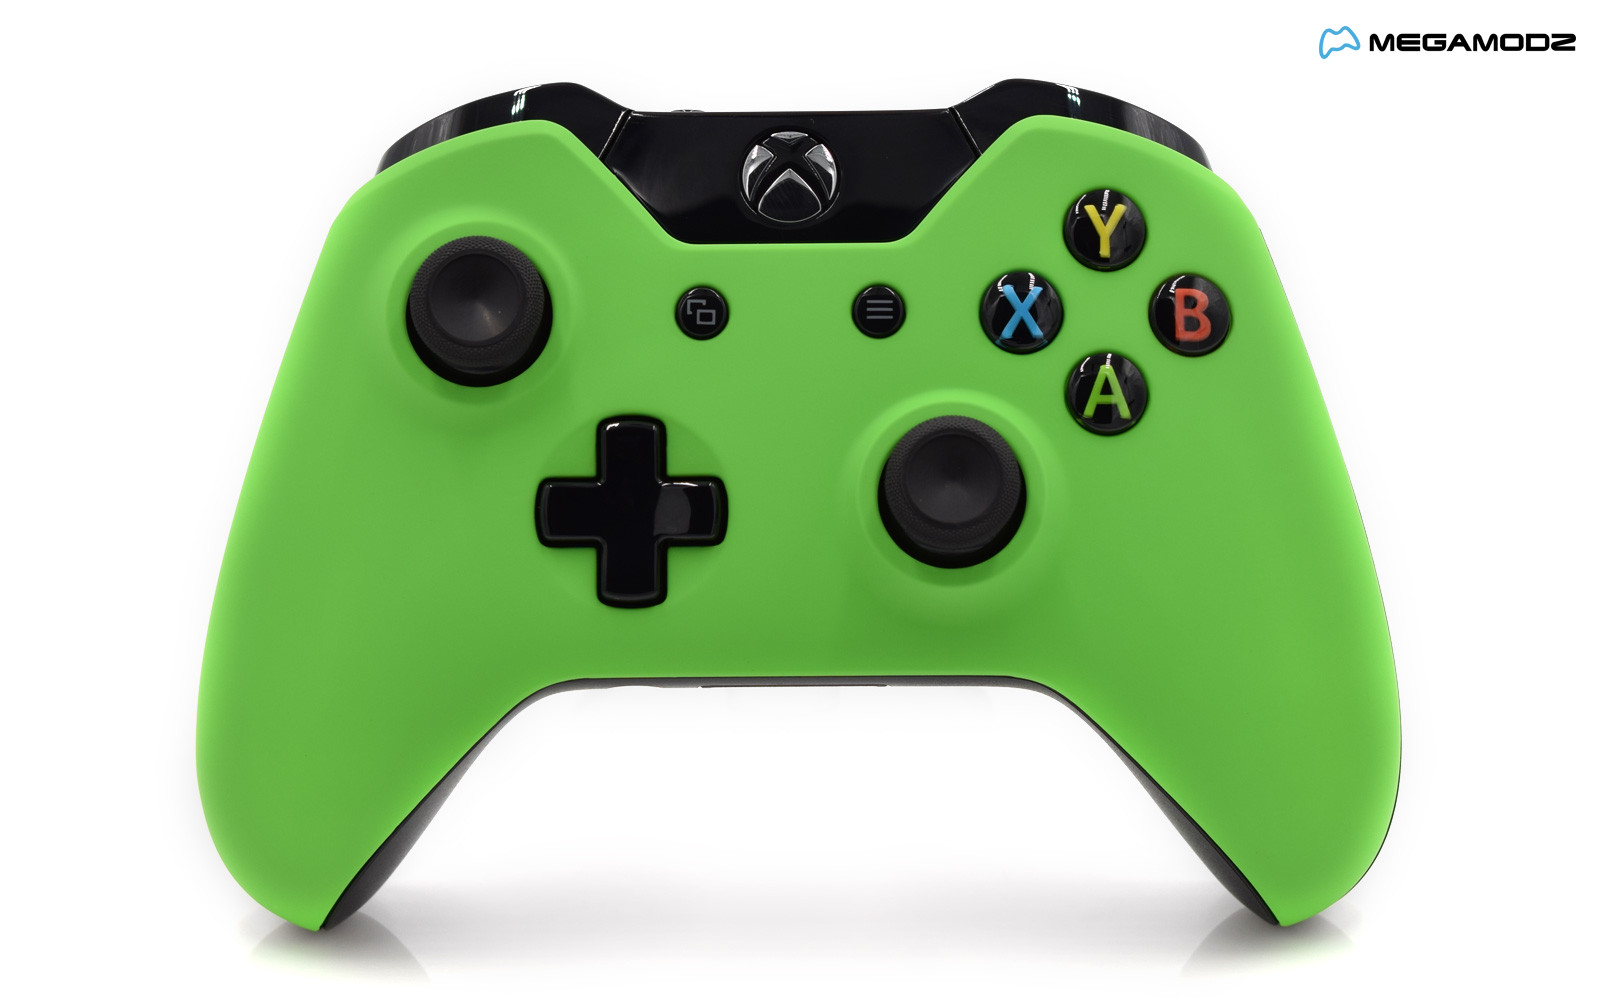 green xbox one s controller